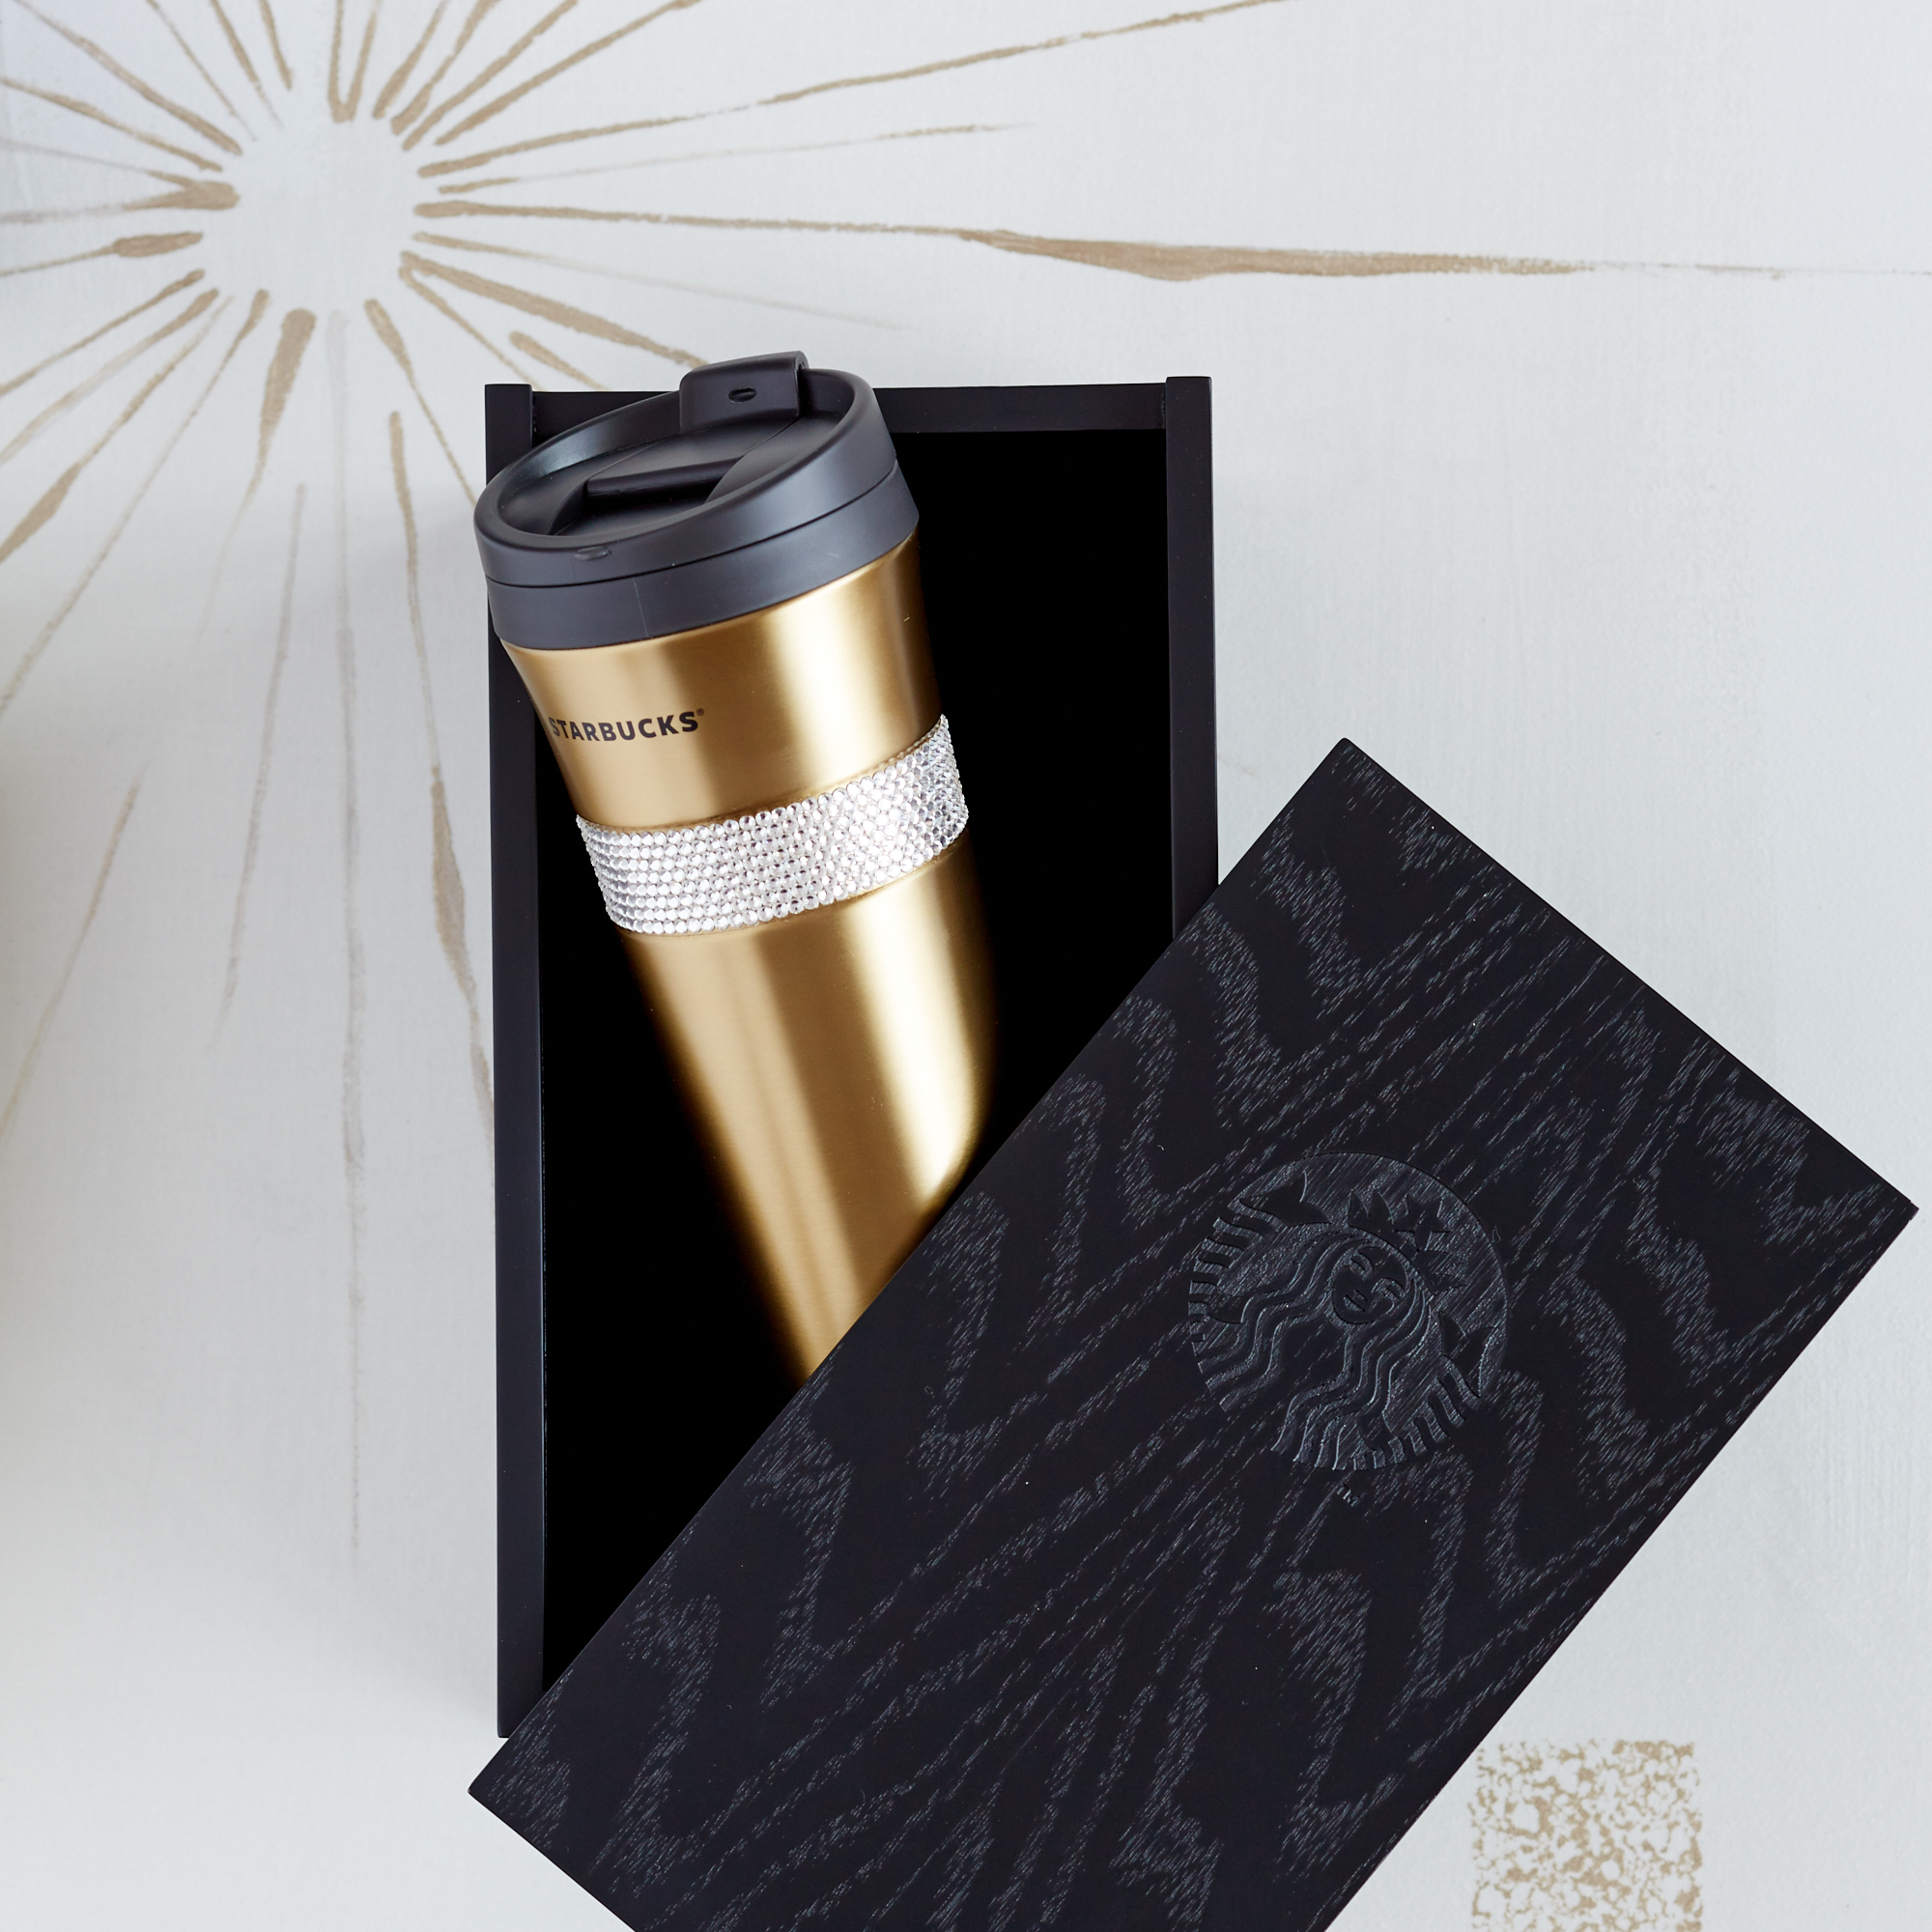 $84.95 Limited Edition Starbucks Swarovski Products Now Available